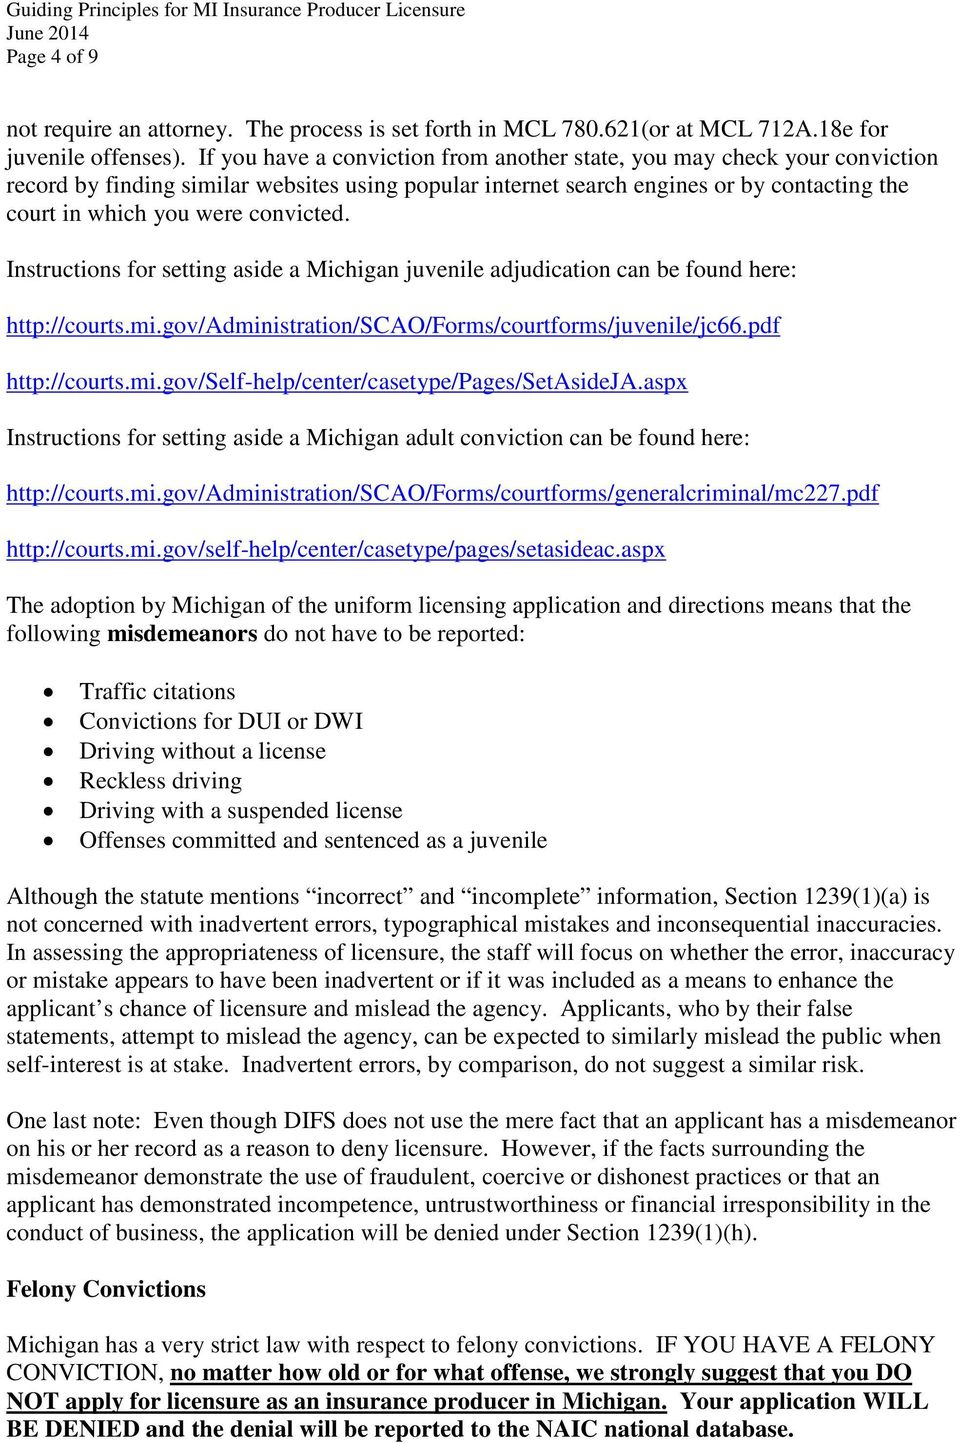 convicted. Instructions for setting aside a Michigan juvenile adjudication can be found here: http://courts.mi.gov/administration/scao/forms/courtforms/juvenile/jc66.pdf http://courts.mi.gov/self-help/center/casetype/pages/setasideja.